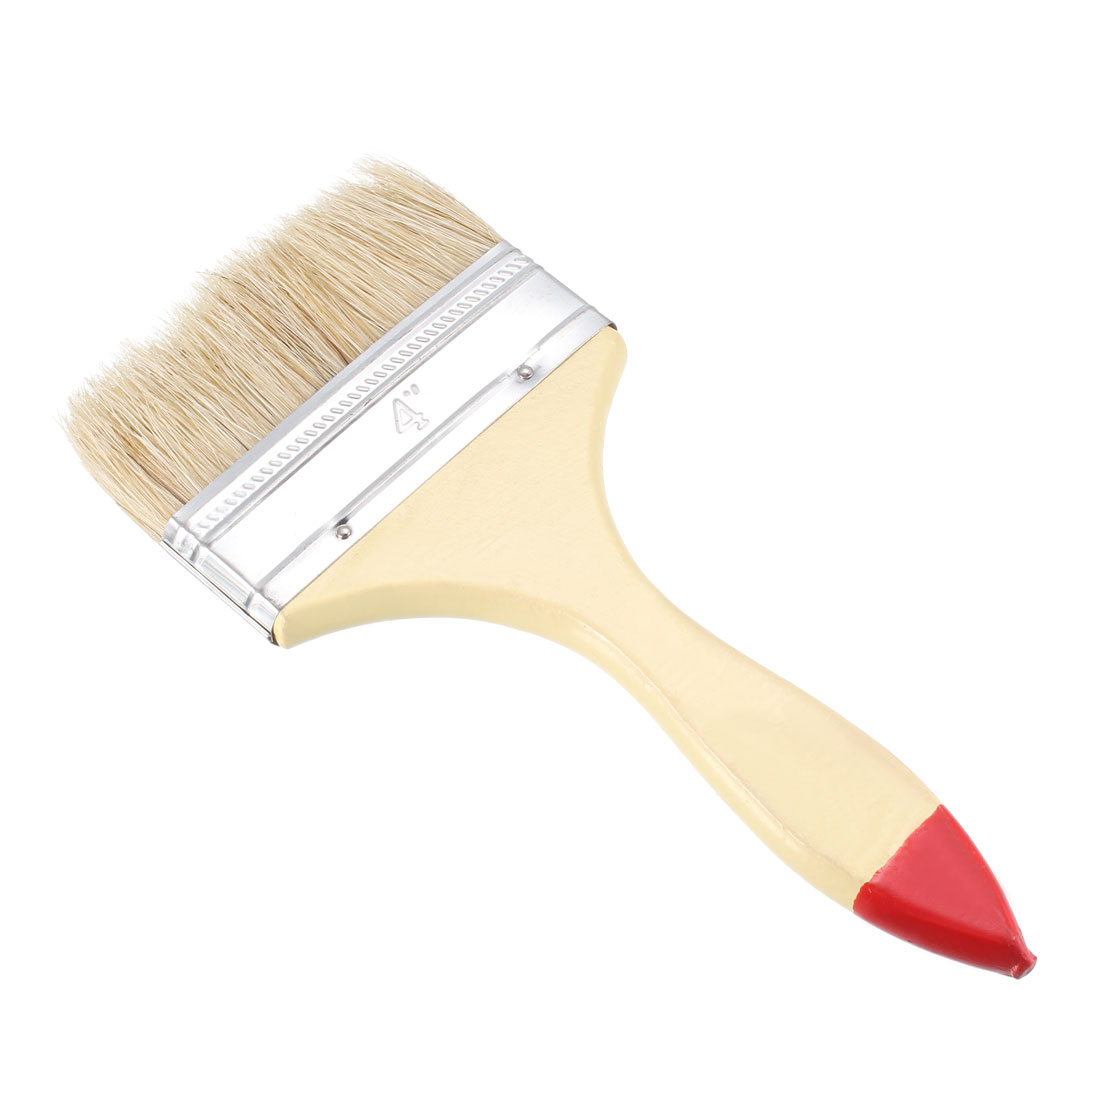 4 Inch Chip Paint Brush Synthetic Bristle with Wood Handle for Wall Treatment